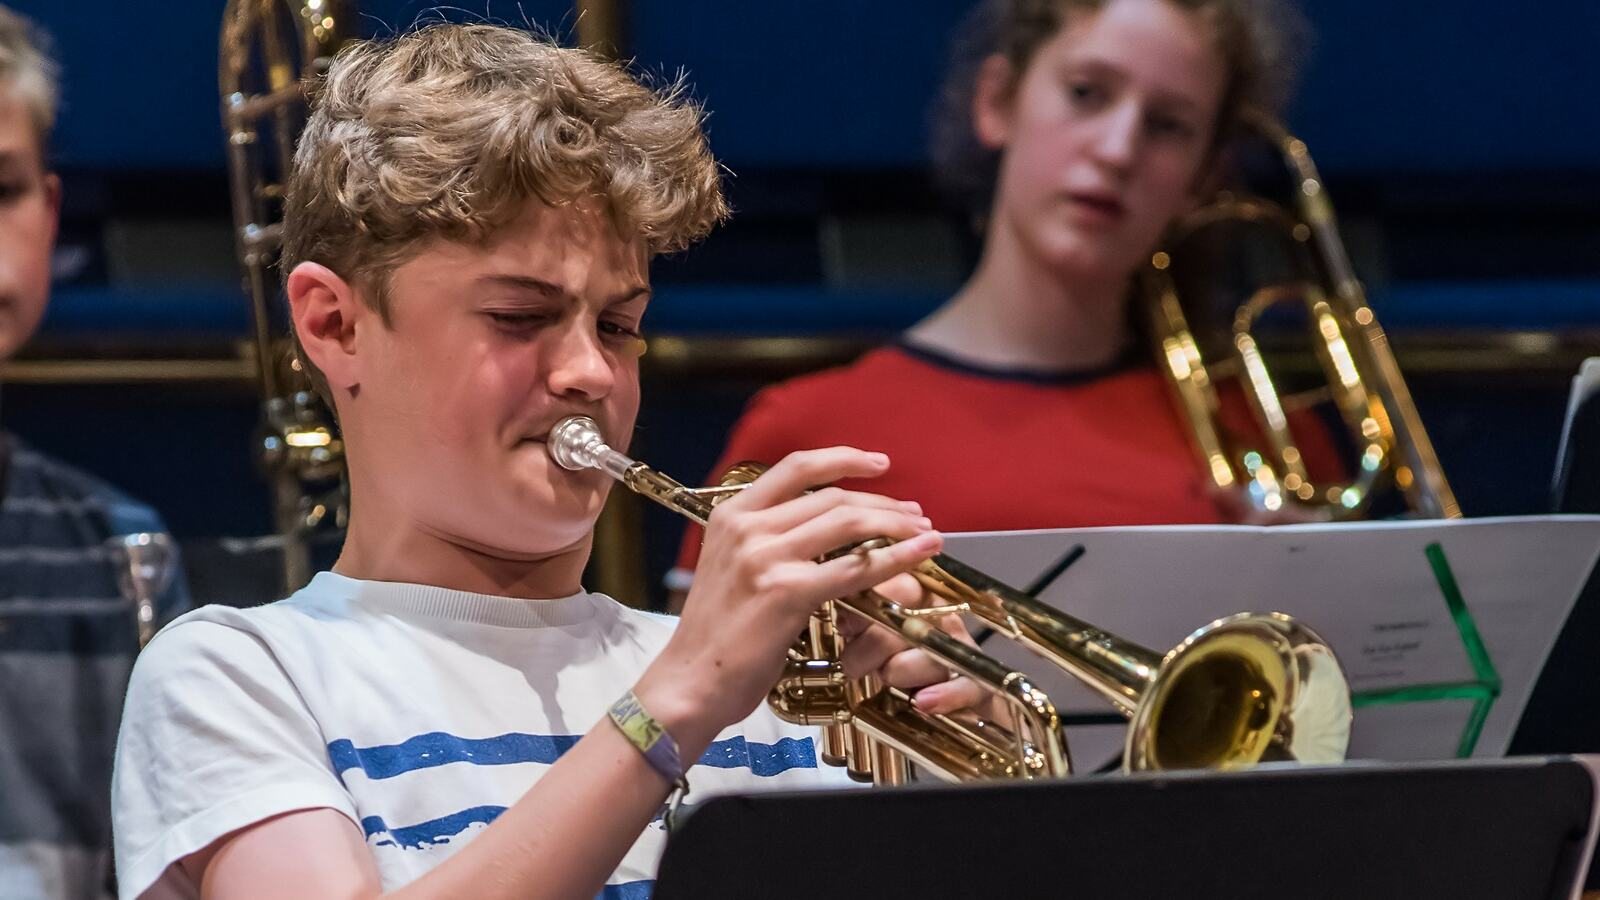 NCO Under 13 Orchestra Winter Concert, boy playing trumpet in an orchestra